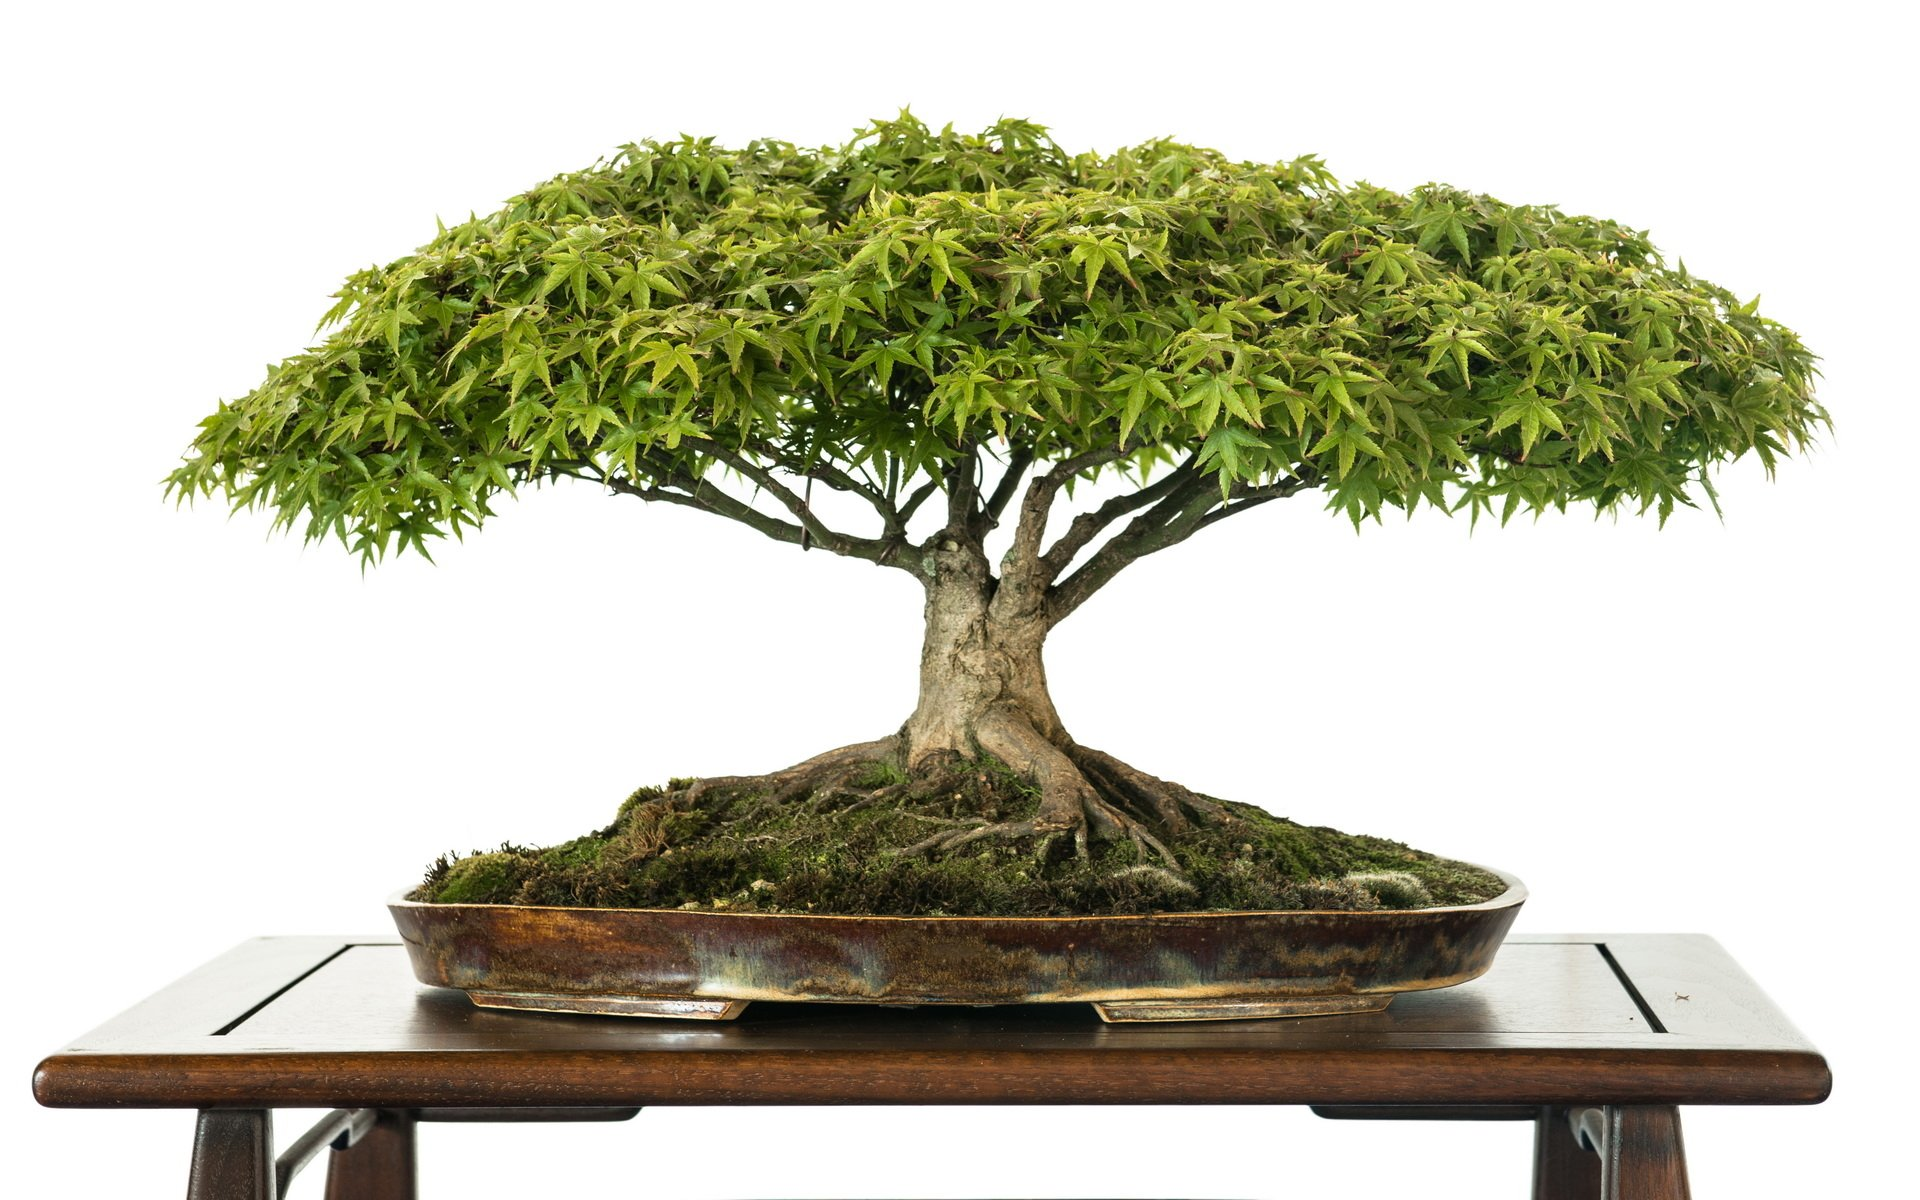 Bonsai Aarde Bonsai Hd Wallpaper Achtergrond 1920x1200 Id 556264